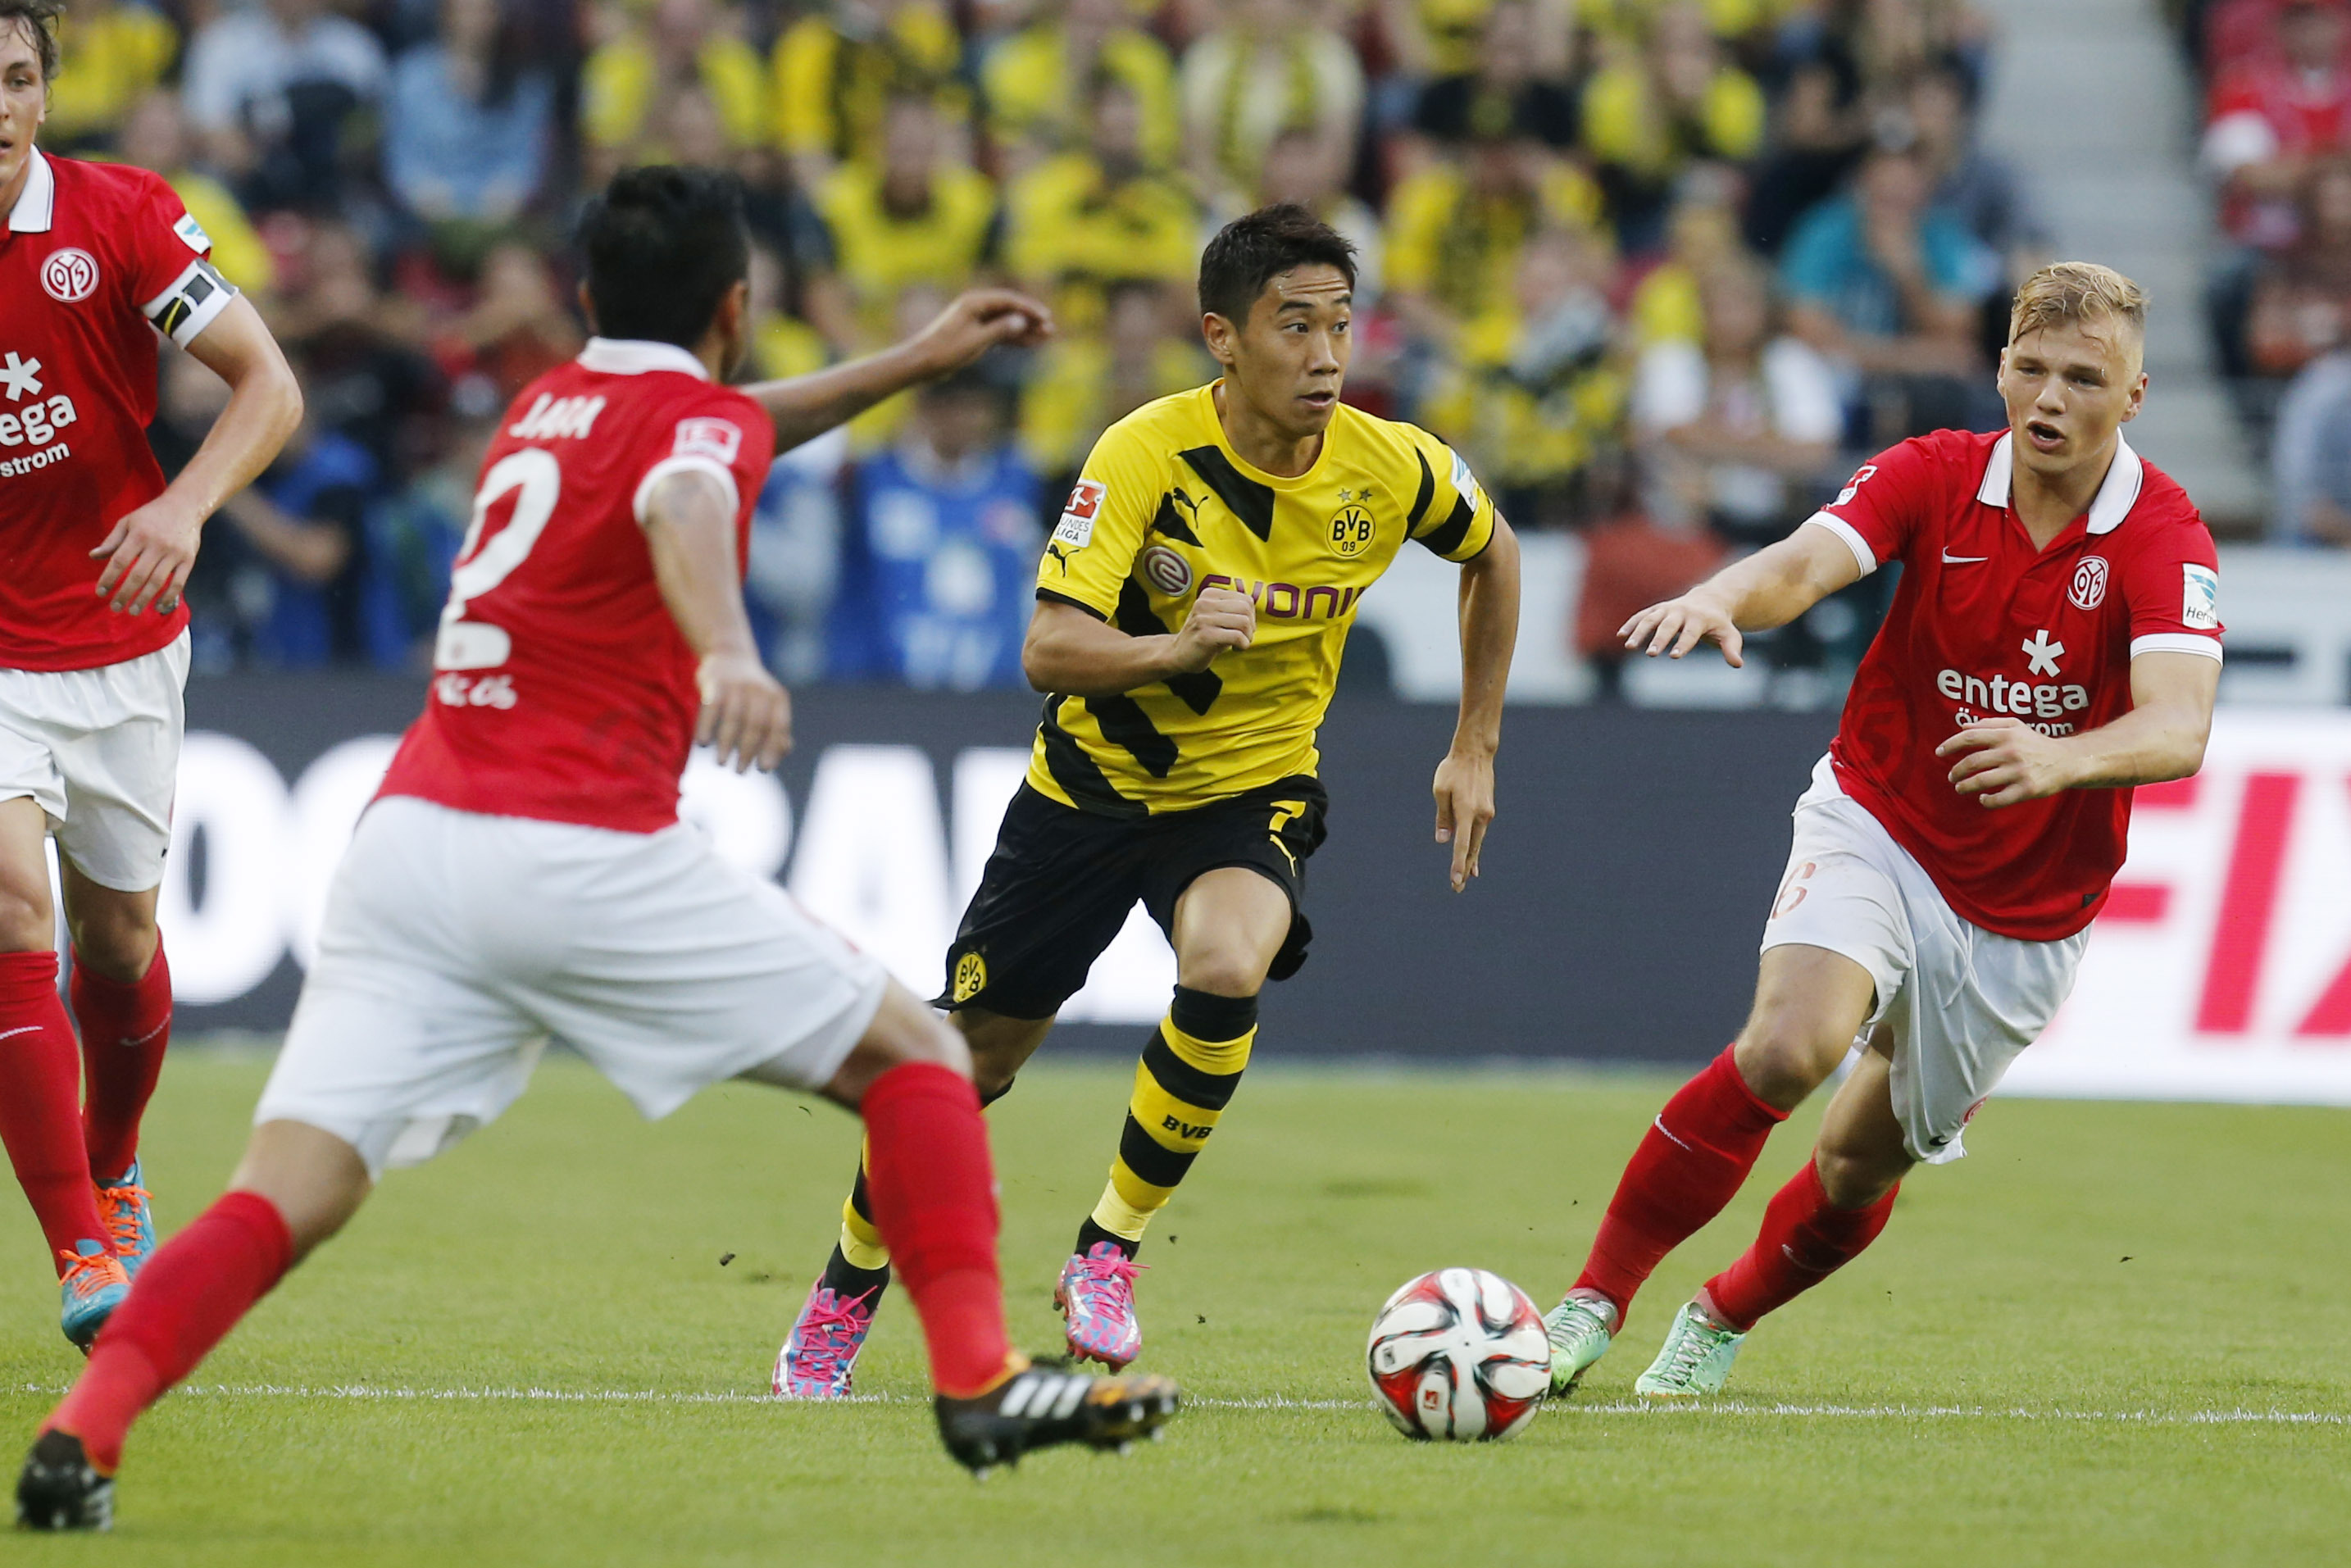 Borussia Dortmund V Mainz Team News Predicted Line Ups Live Stream Tv Info Bleacher Report Latest News Videos And Highlights